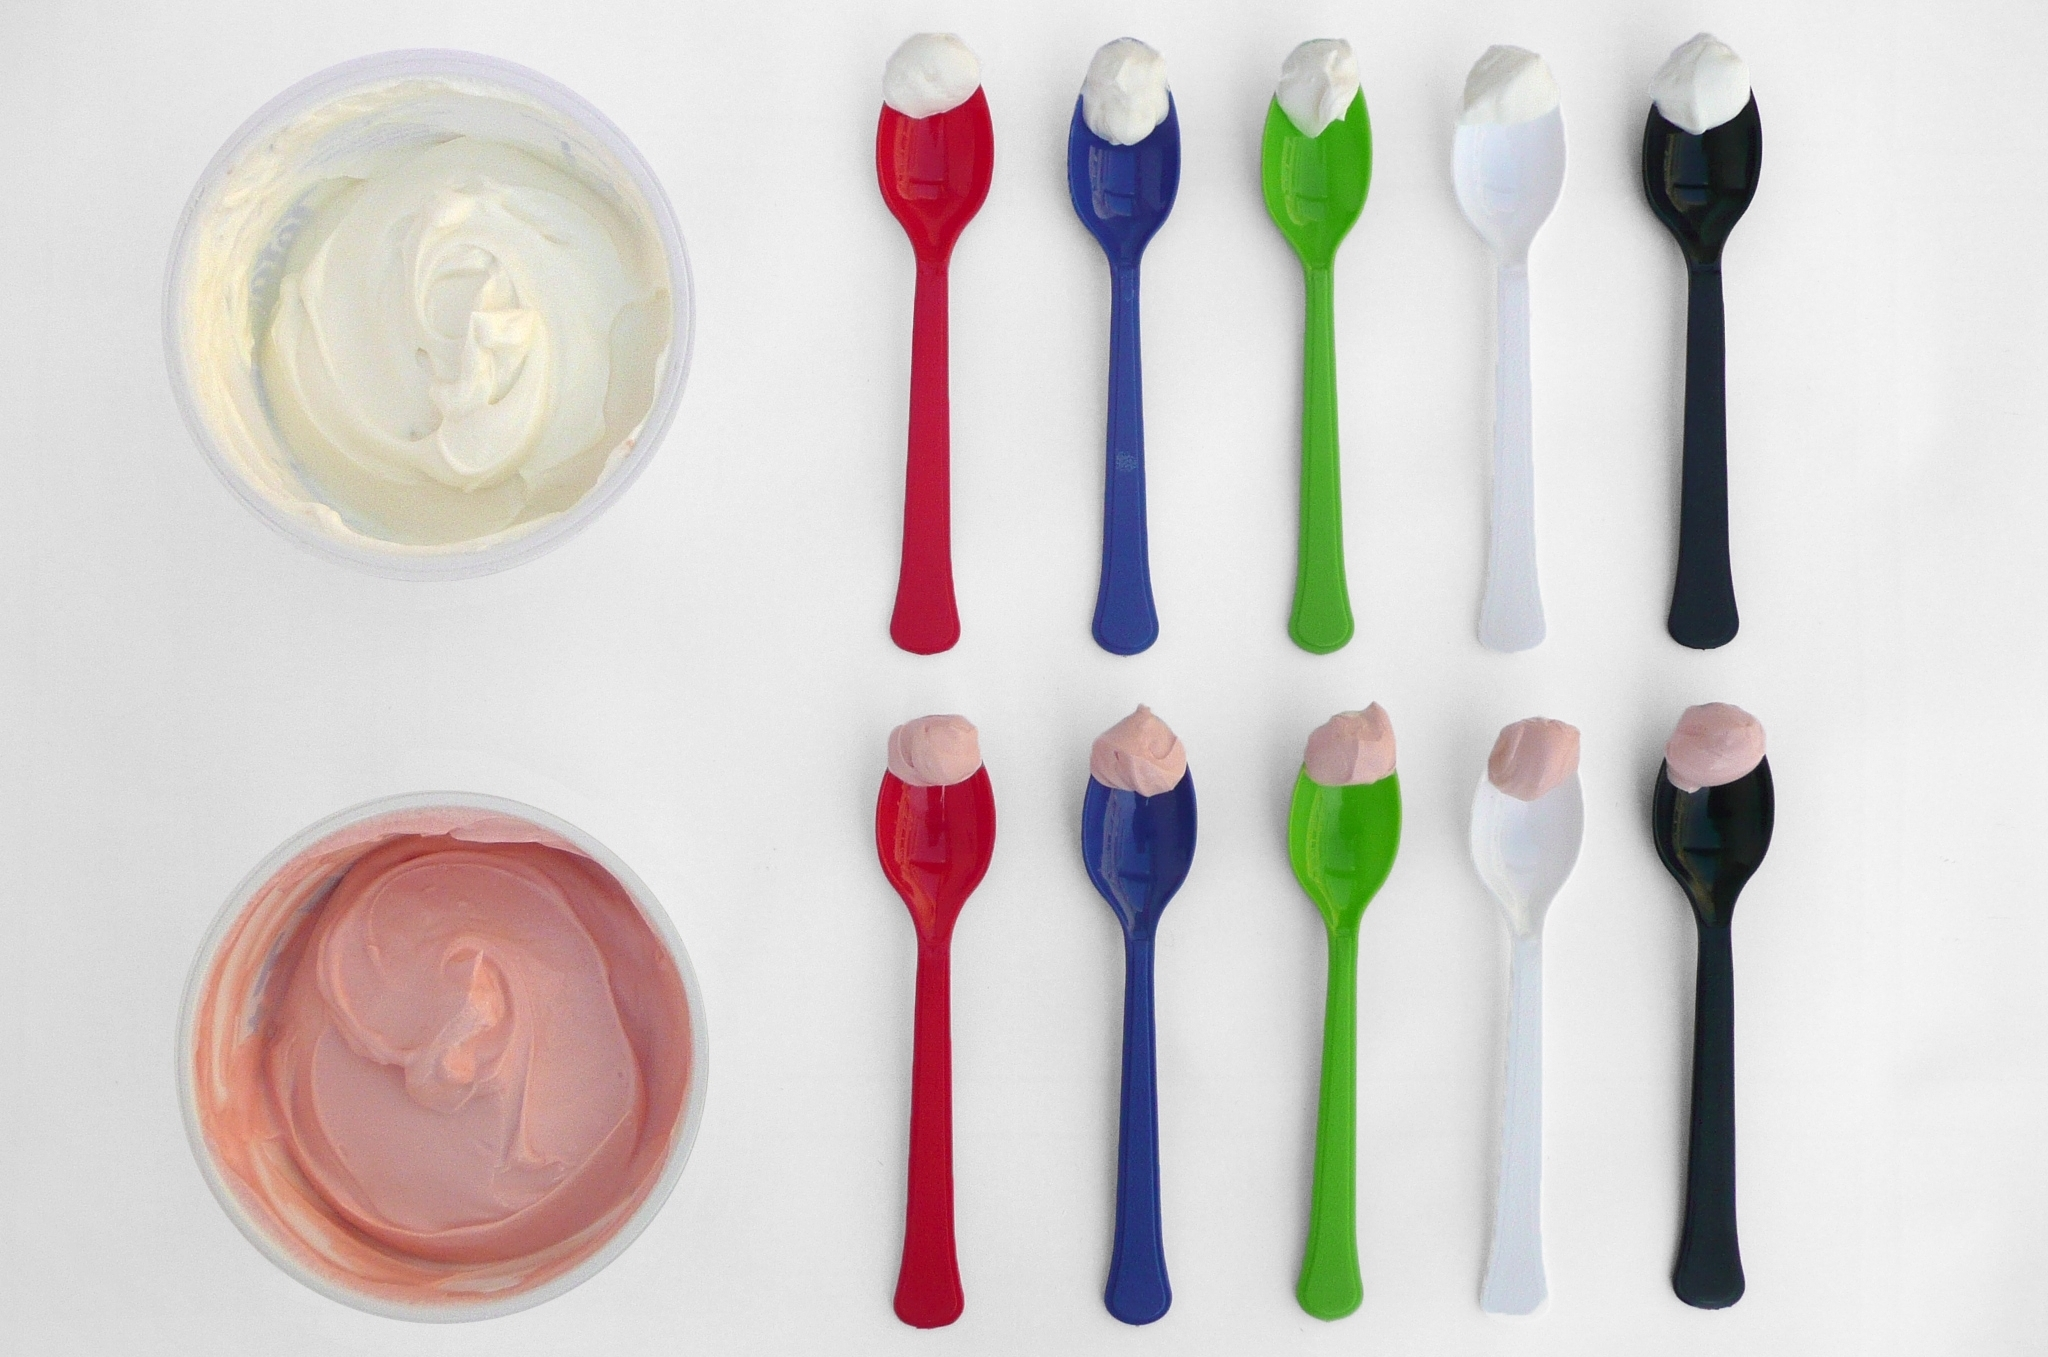 Which spoonful of yogurt looks the tastiest? Studies show people tend to eat less when their dishes are in sharp color-contrast to their food.